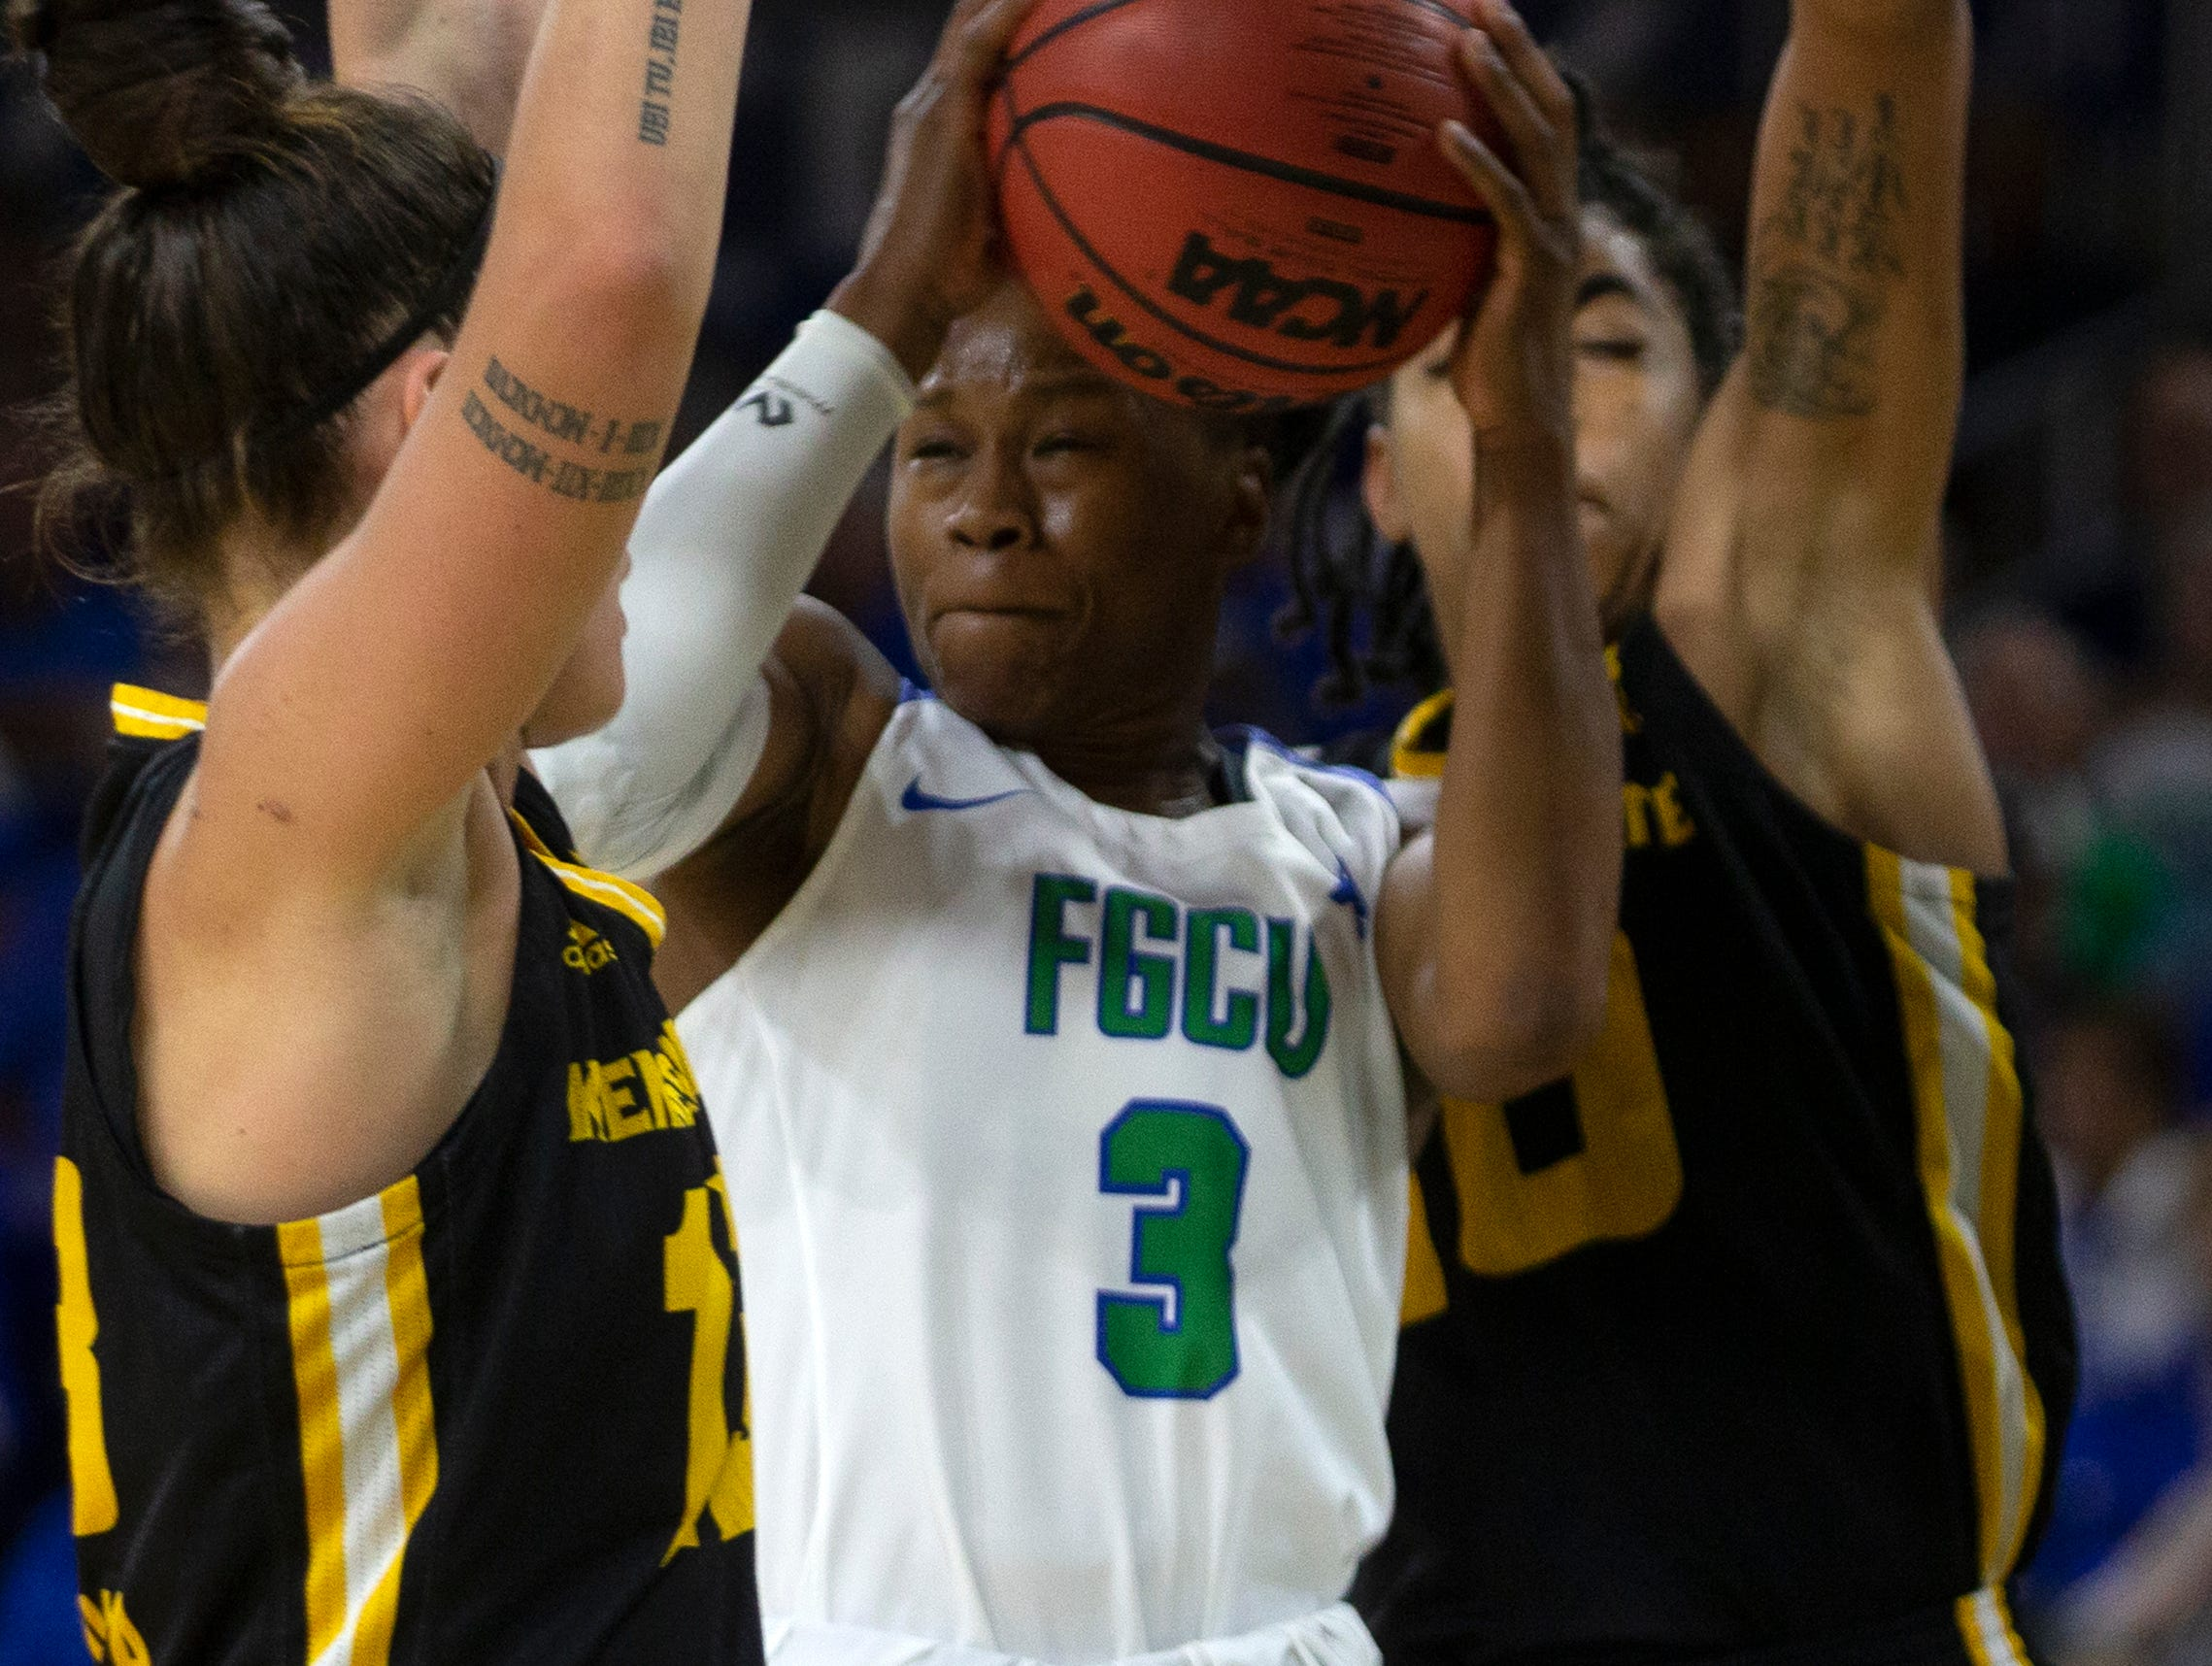 Florida Gulf Coast University's Keri Jewett-Giles attempts a layup between Kennesaw State's Carlotta Gianolla, left, and Alexis Poole, Wednesday, March 13, 2019, at Florida Gulf Coast University's Alico Arena.